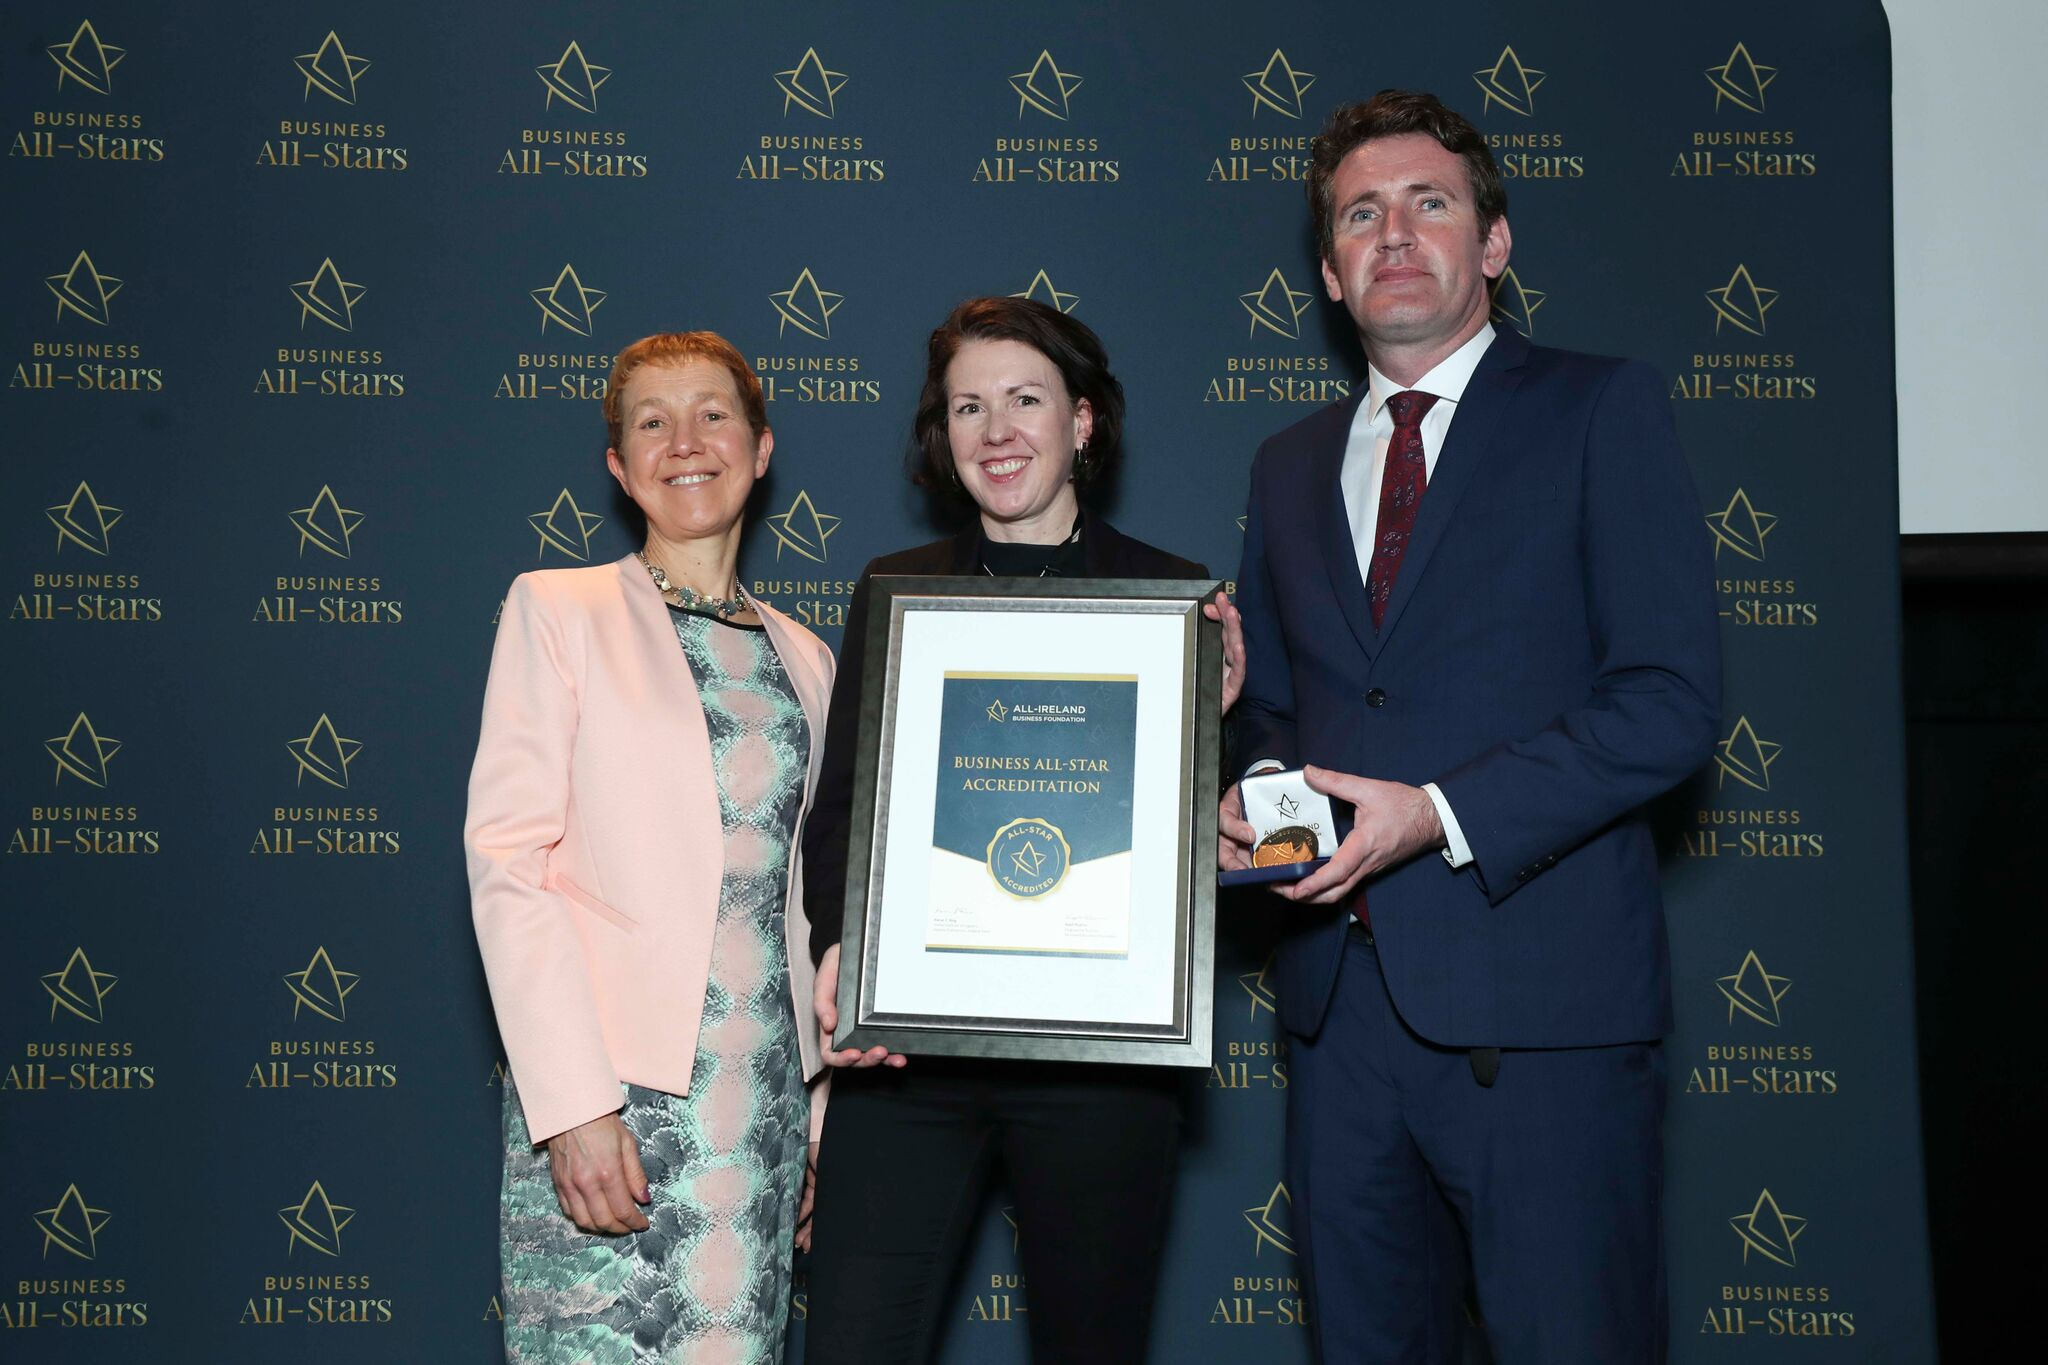 Aoife Gaffney - Prudence Moneypenny Coaching receiving Business All-Star Thought Leader Accreditation at Croke Park from Dr Briga Hynes, Kemmy Business School, University of Limerick and Senator Aodhán Ó Ríordáin, Spokesperson on Education and Skills, Gaeilge and the Gaeltacht.